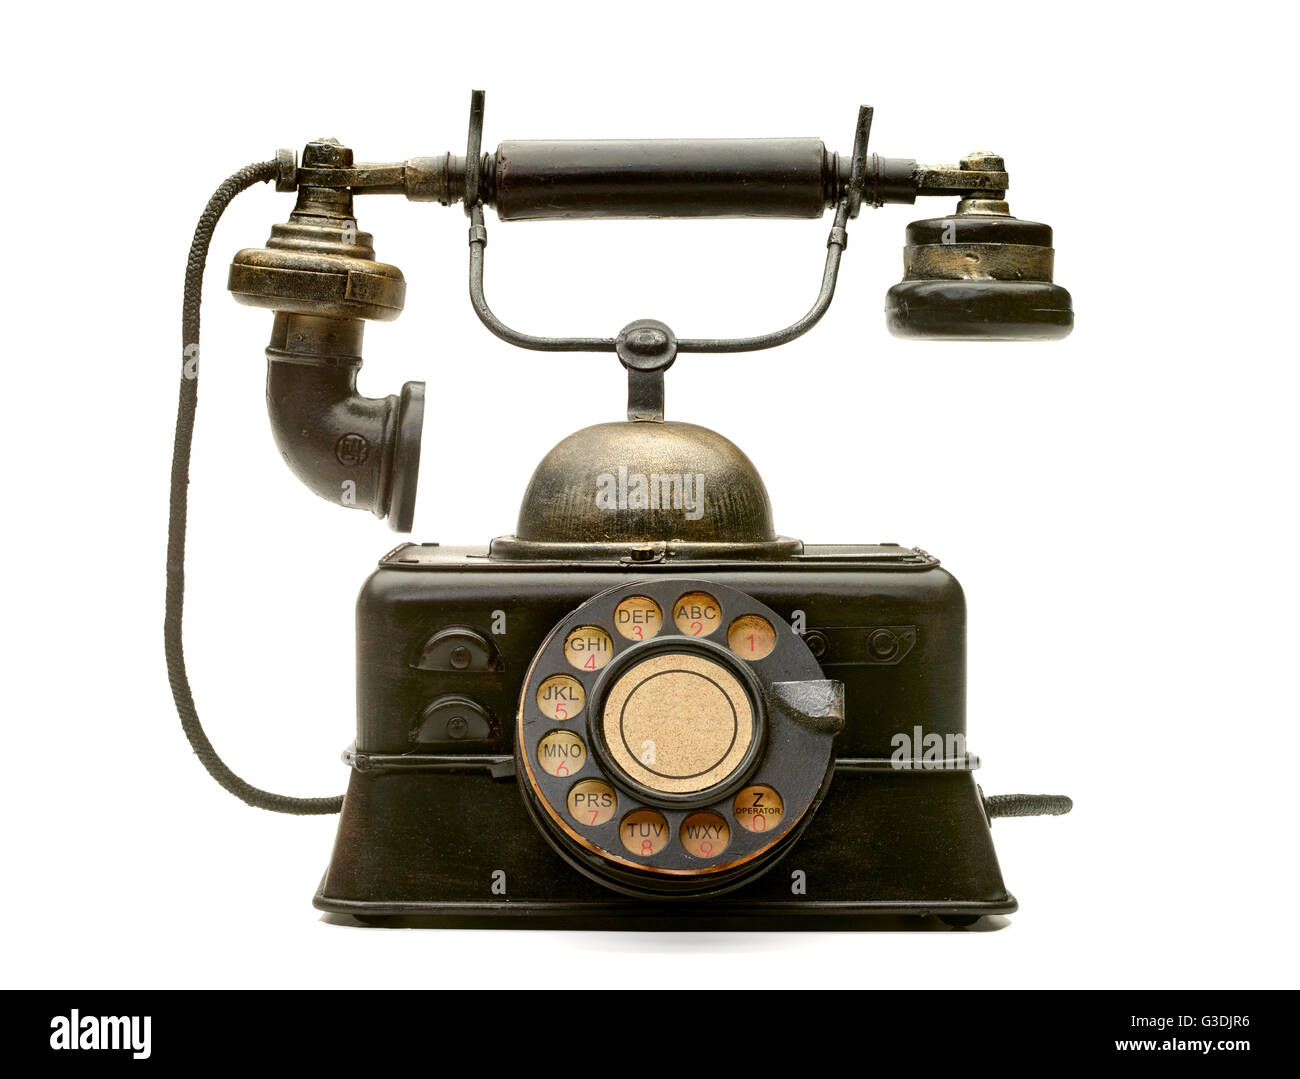 Old Vintage Antique Telephone - Stock Image